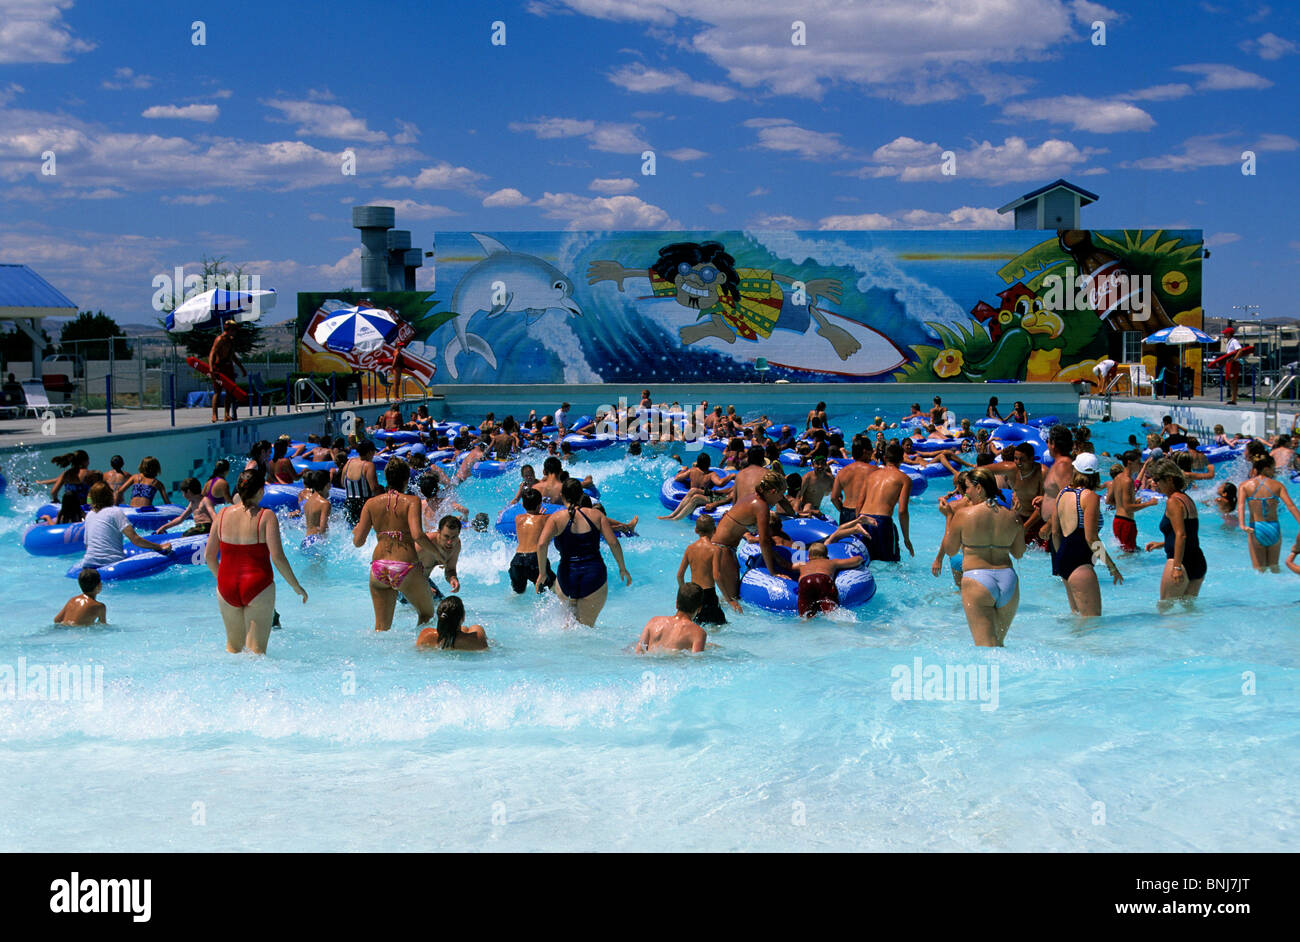 Usa nevada town city swimming pool water park bathing for Garden city swimming pool